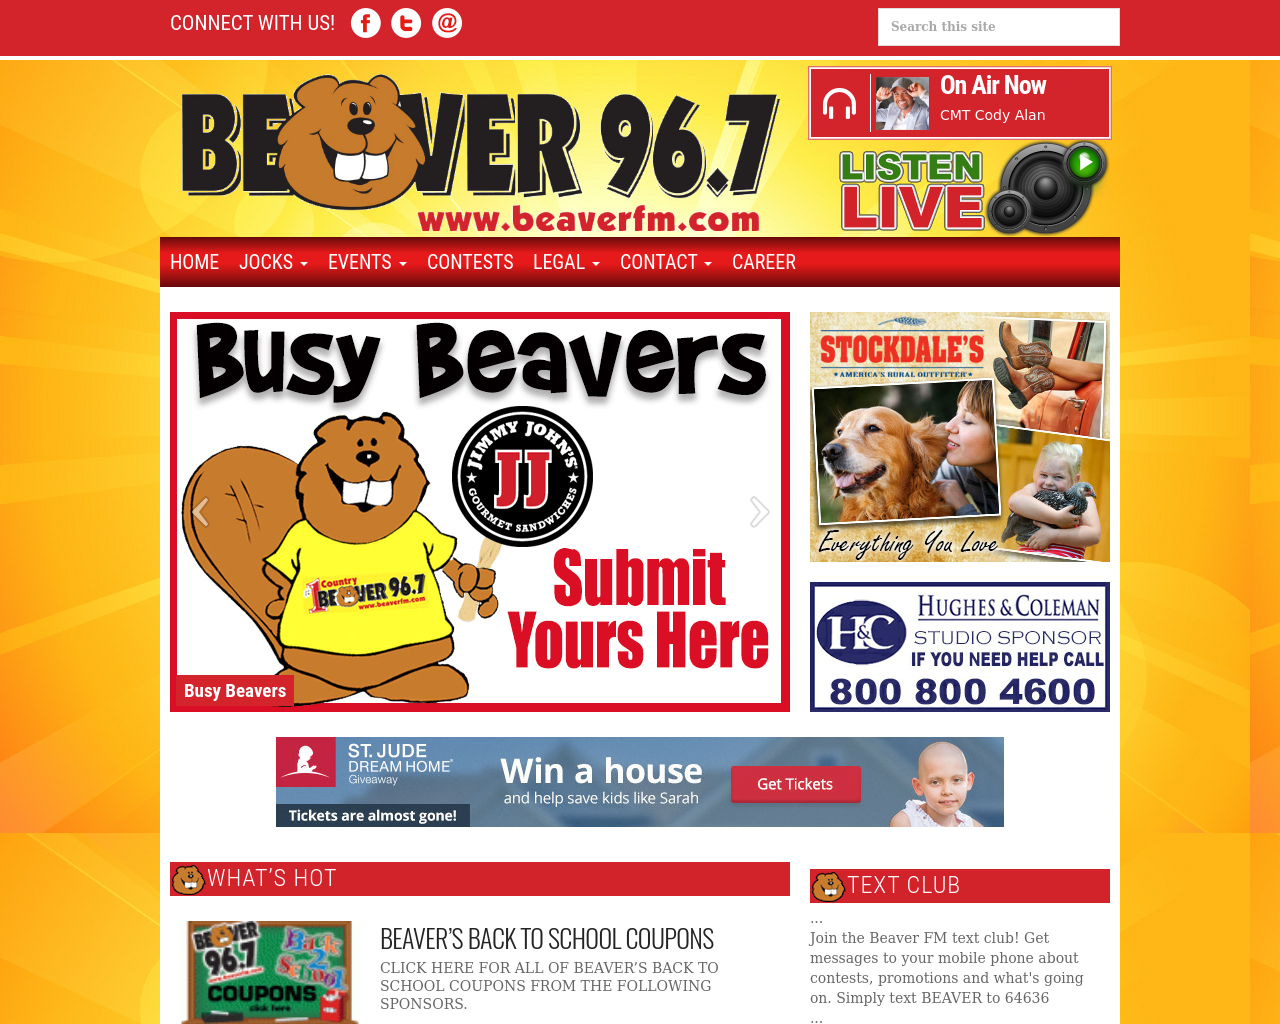 #1-Country-Beaver-96.7-Advertising-Reviews-Pricing